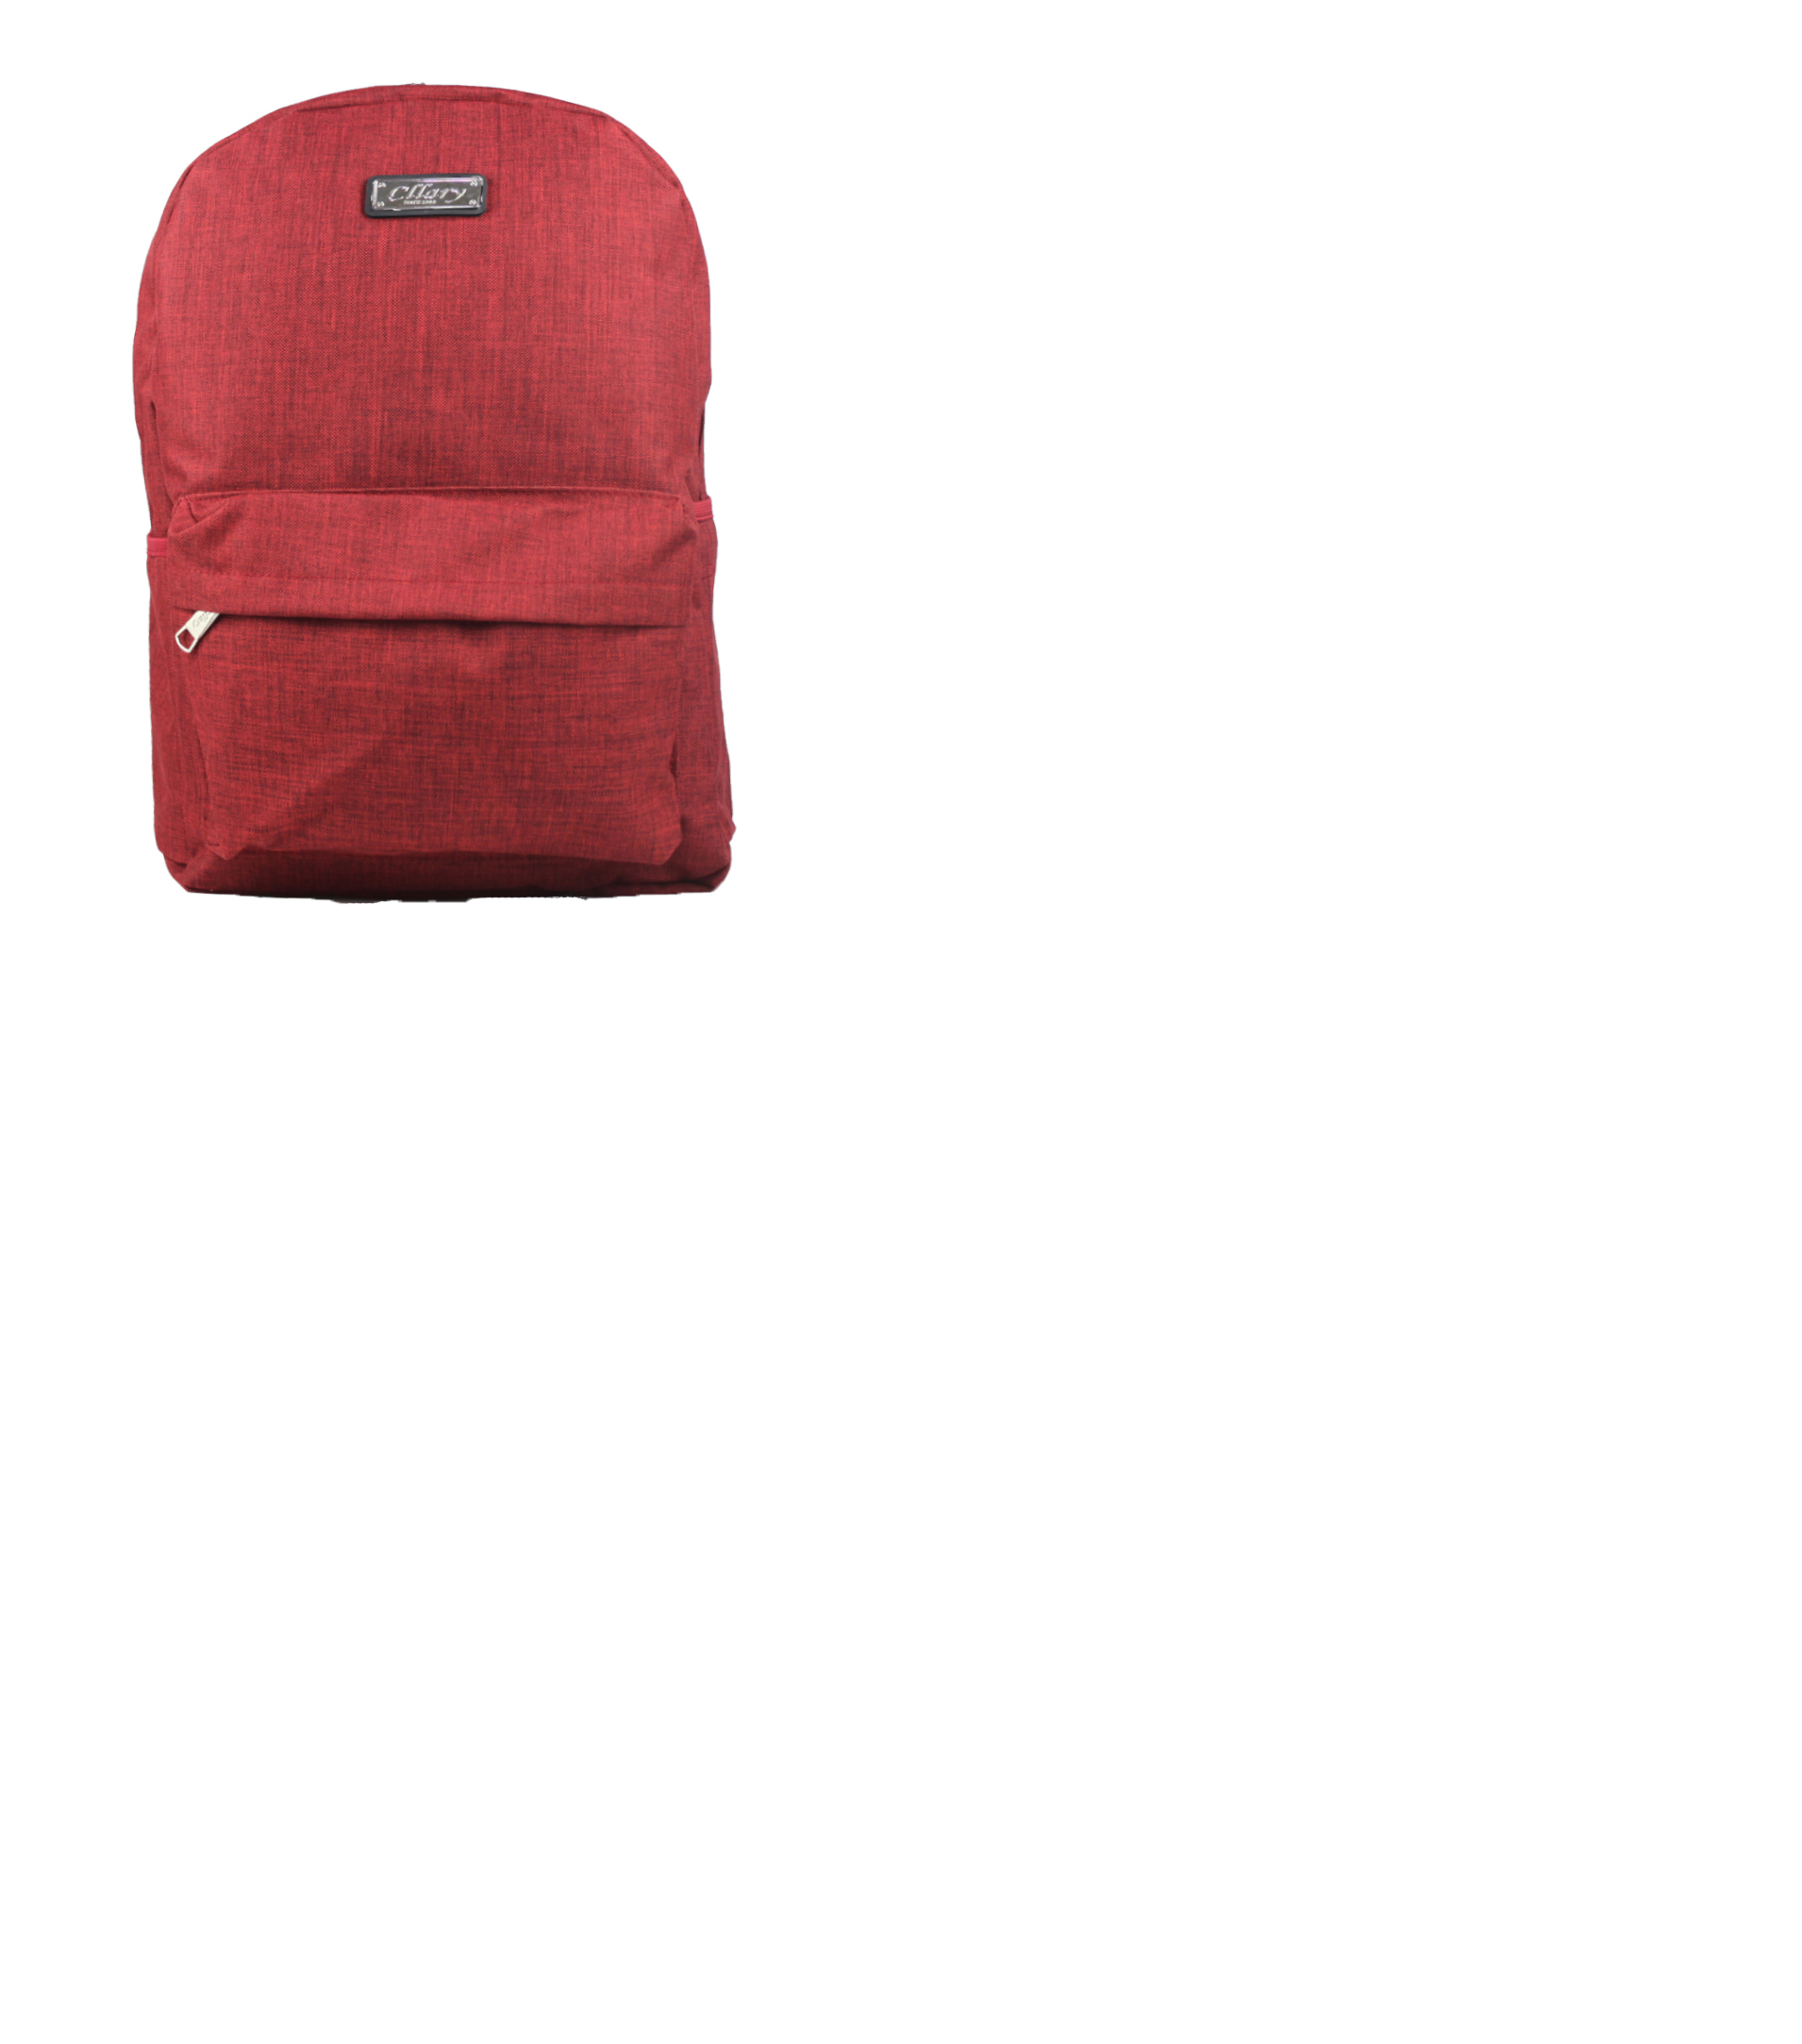 Cllary Travel Leisure School Laptop BackPack 55158LB